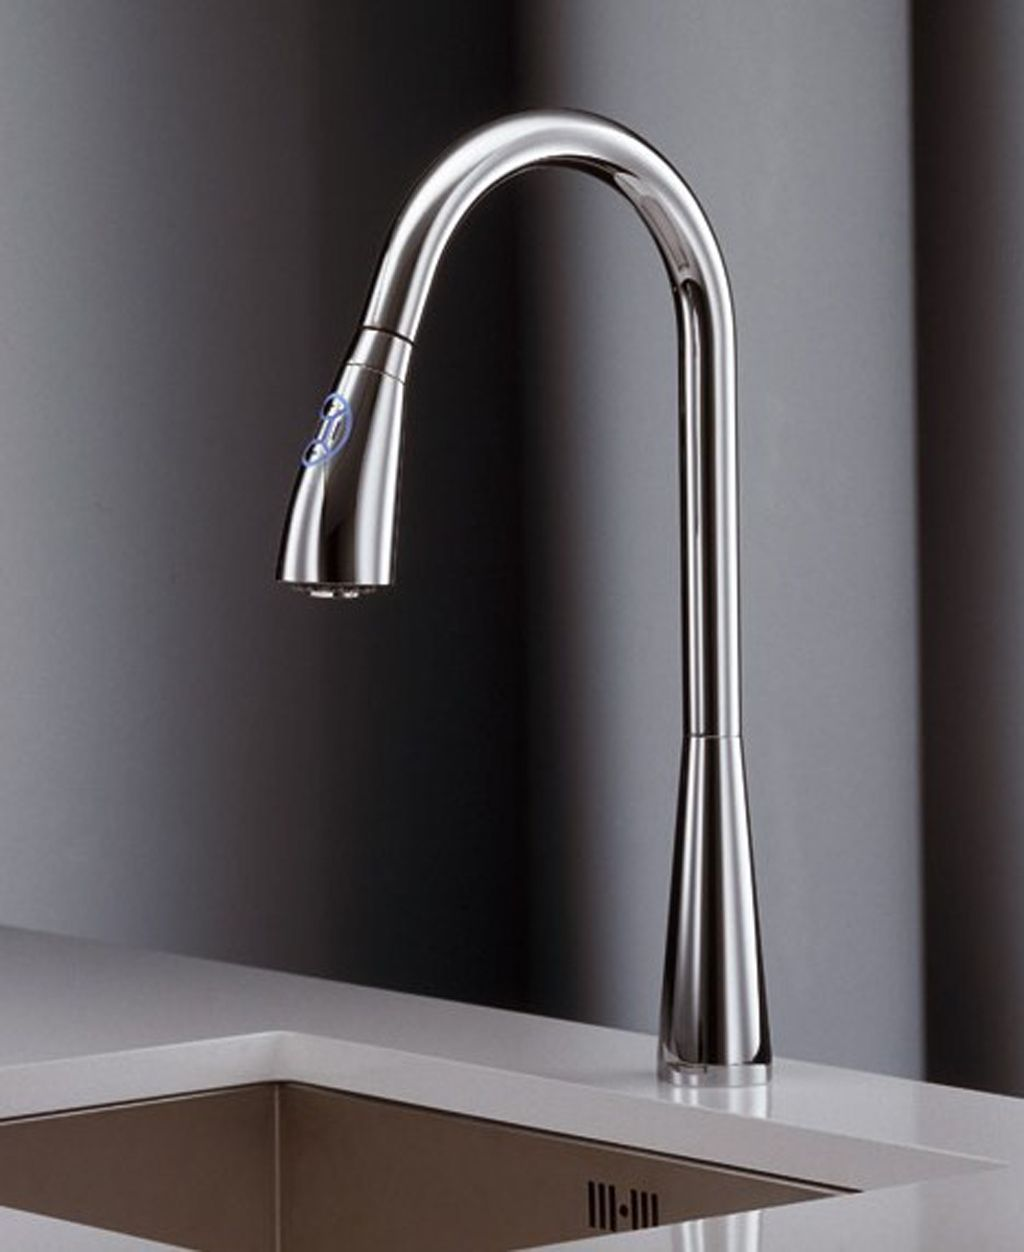 Simple Ultra Modern Stainless Steel Kitchen Faucet On White Ceramic  Countertop Plus Black Background Idea